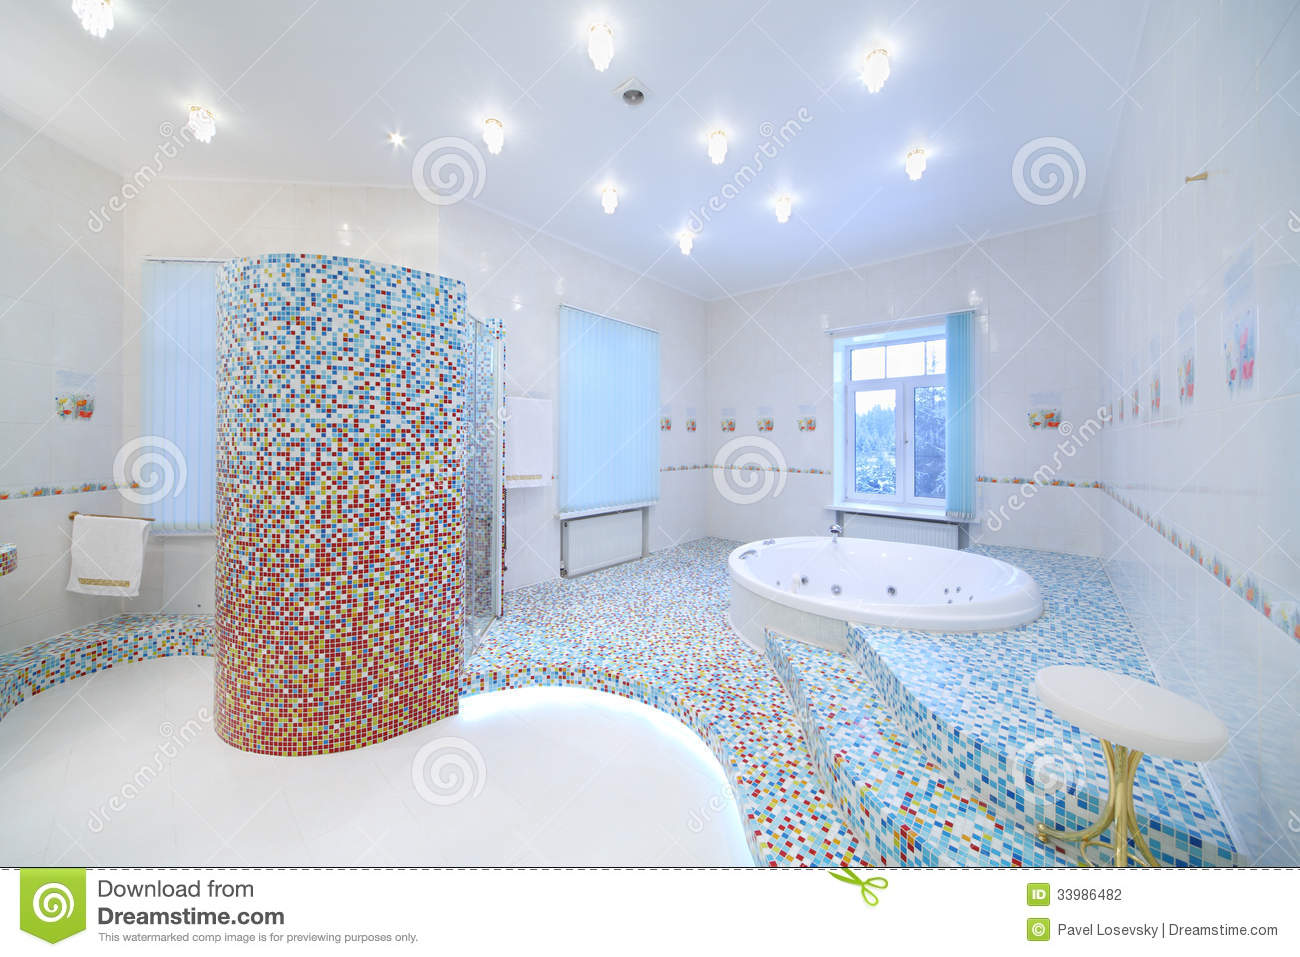 Light And Clean Bathroom With Jacuzzi And Shower Cabin Stock Photo - Image of home, ceramics ...